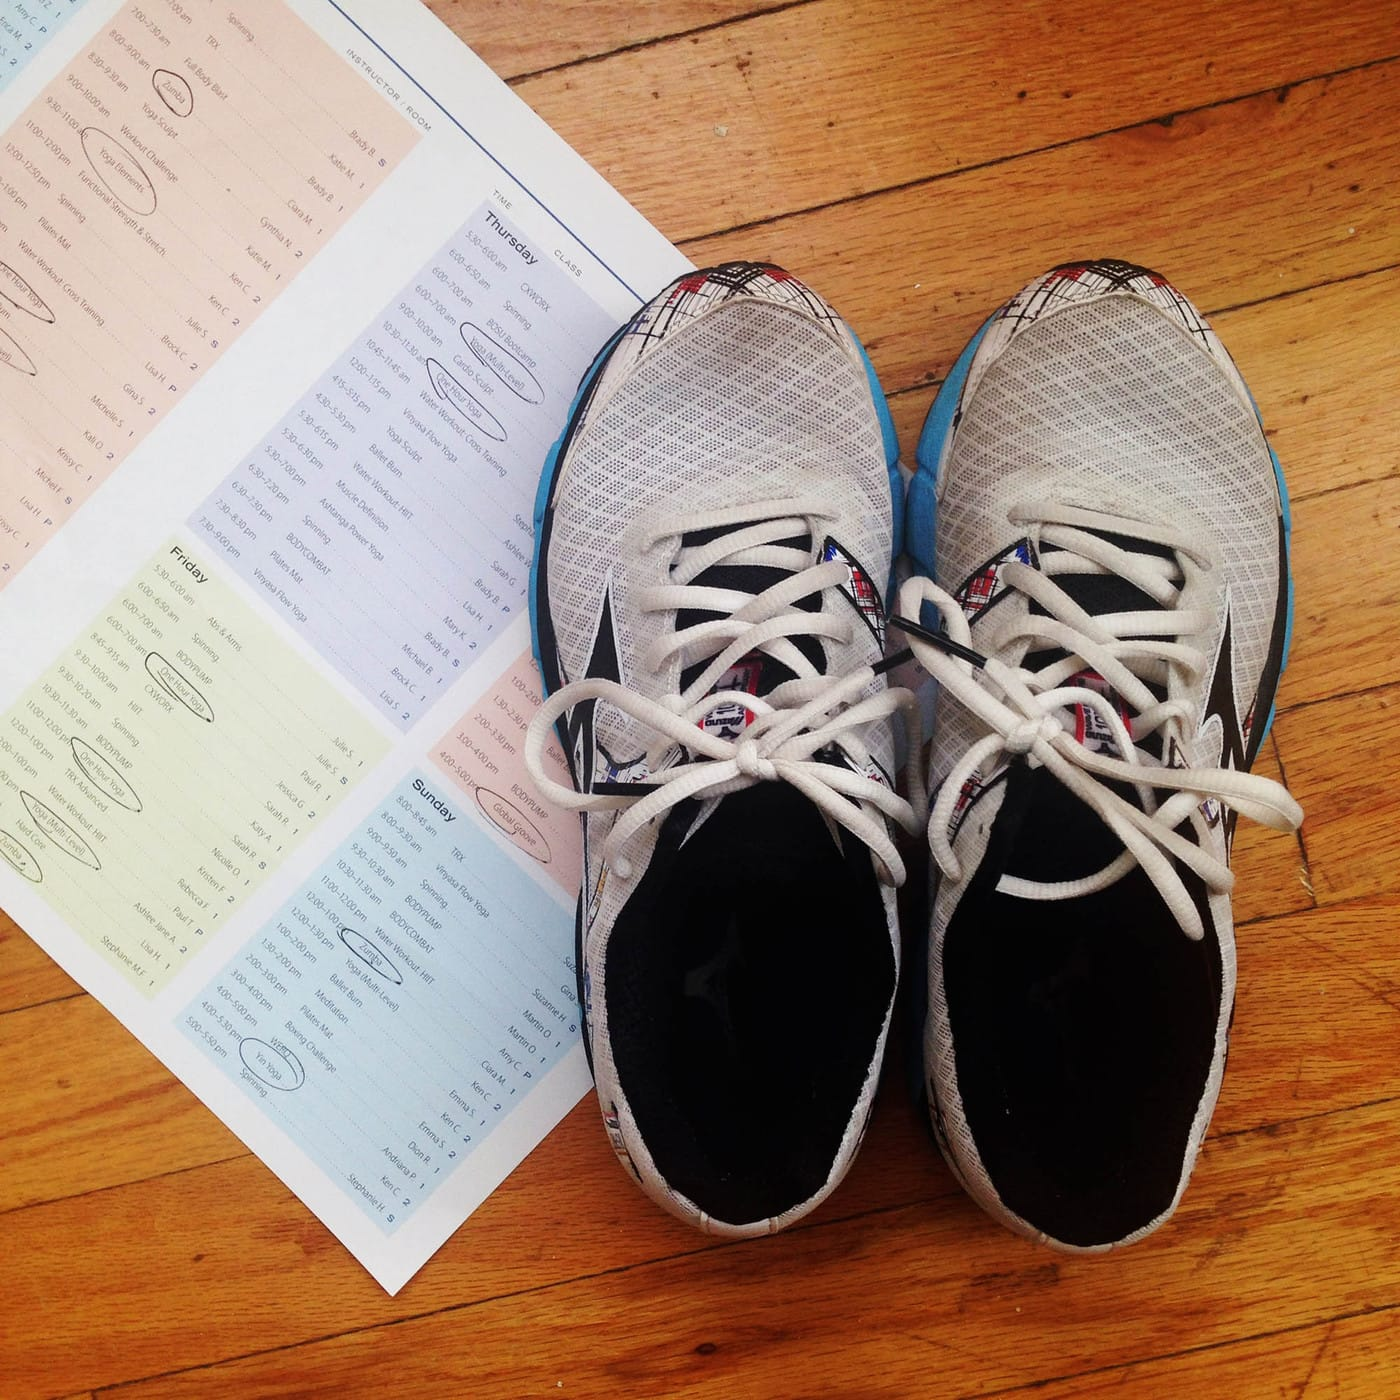 My gym shoes and gym schedule. | How to finally start going to the gym